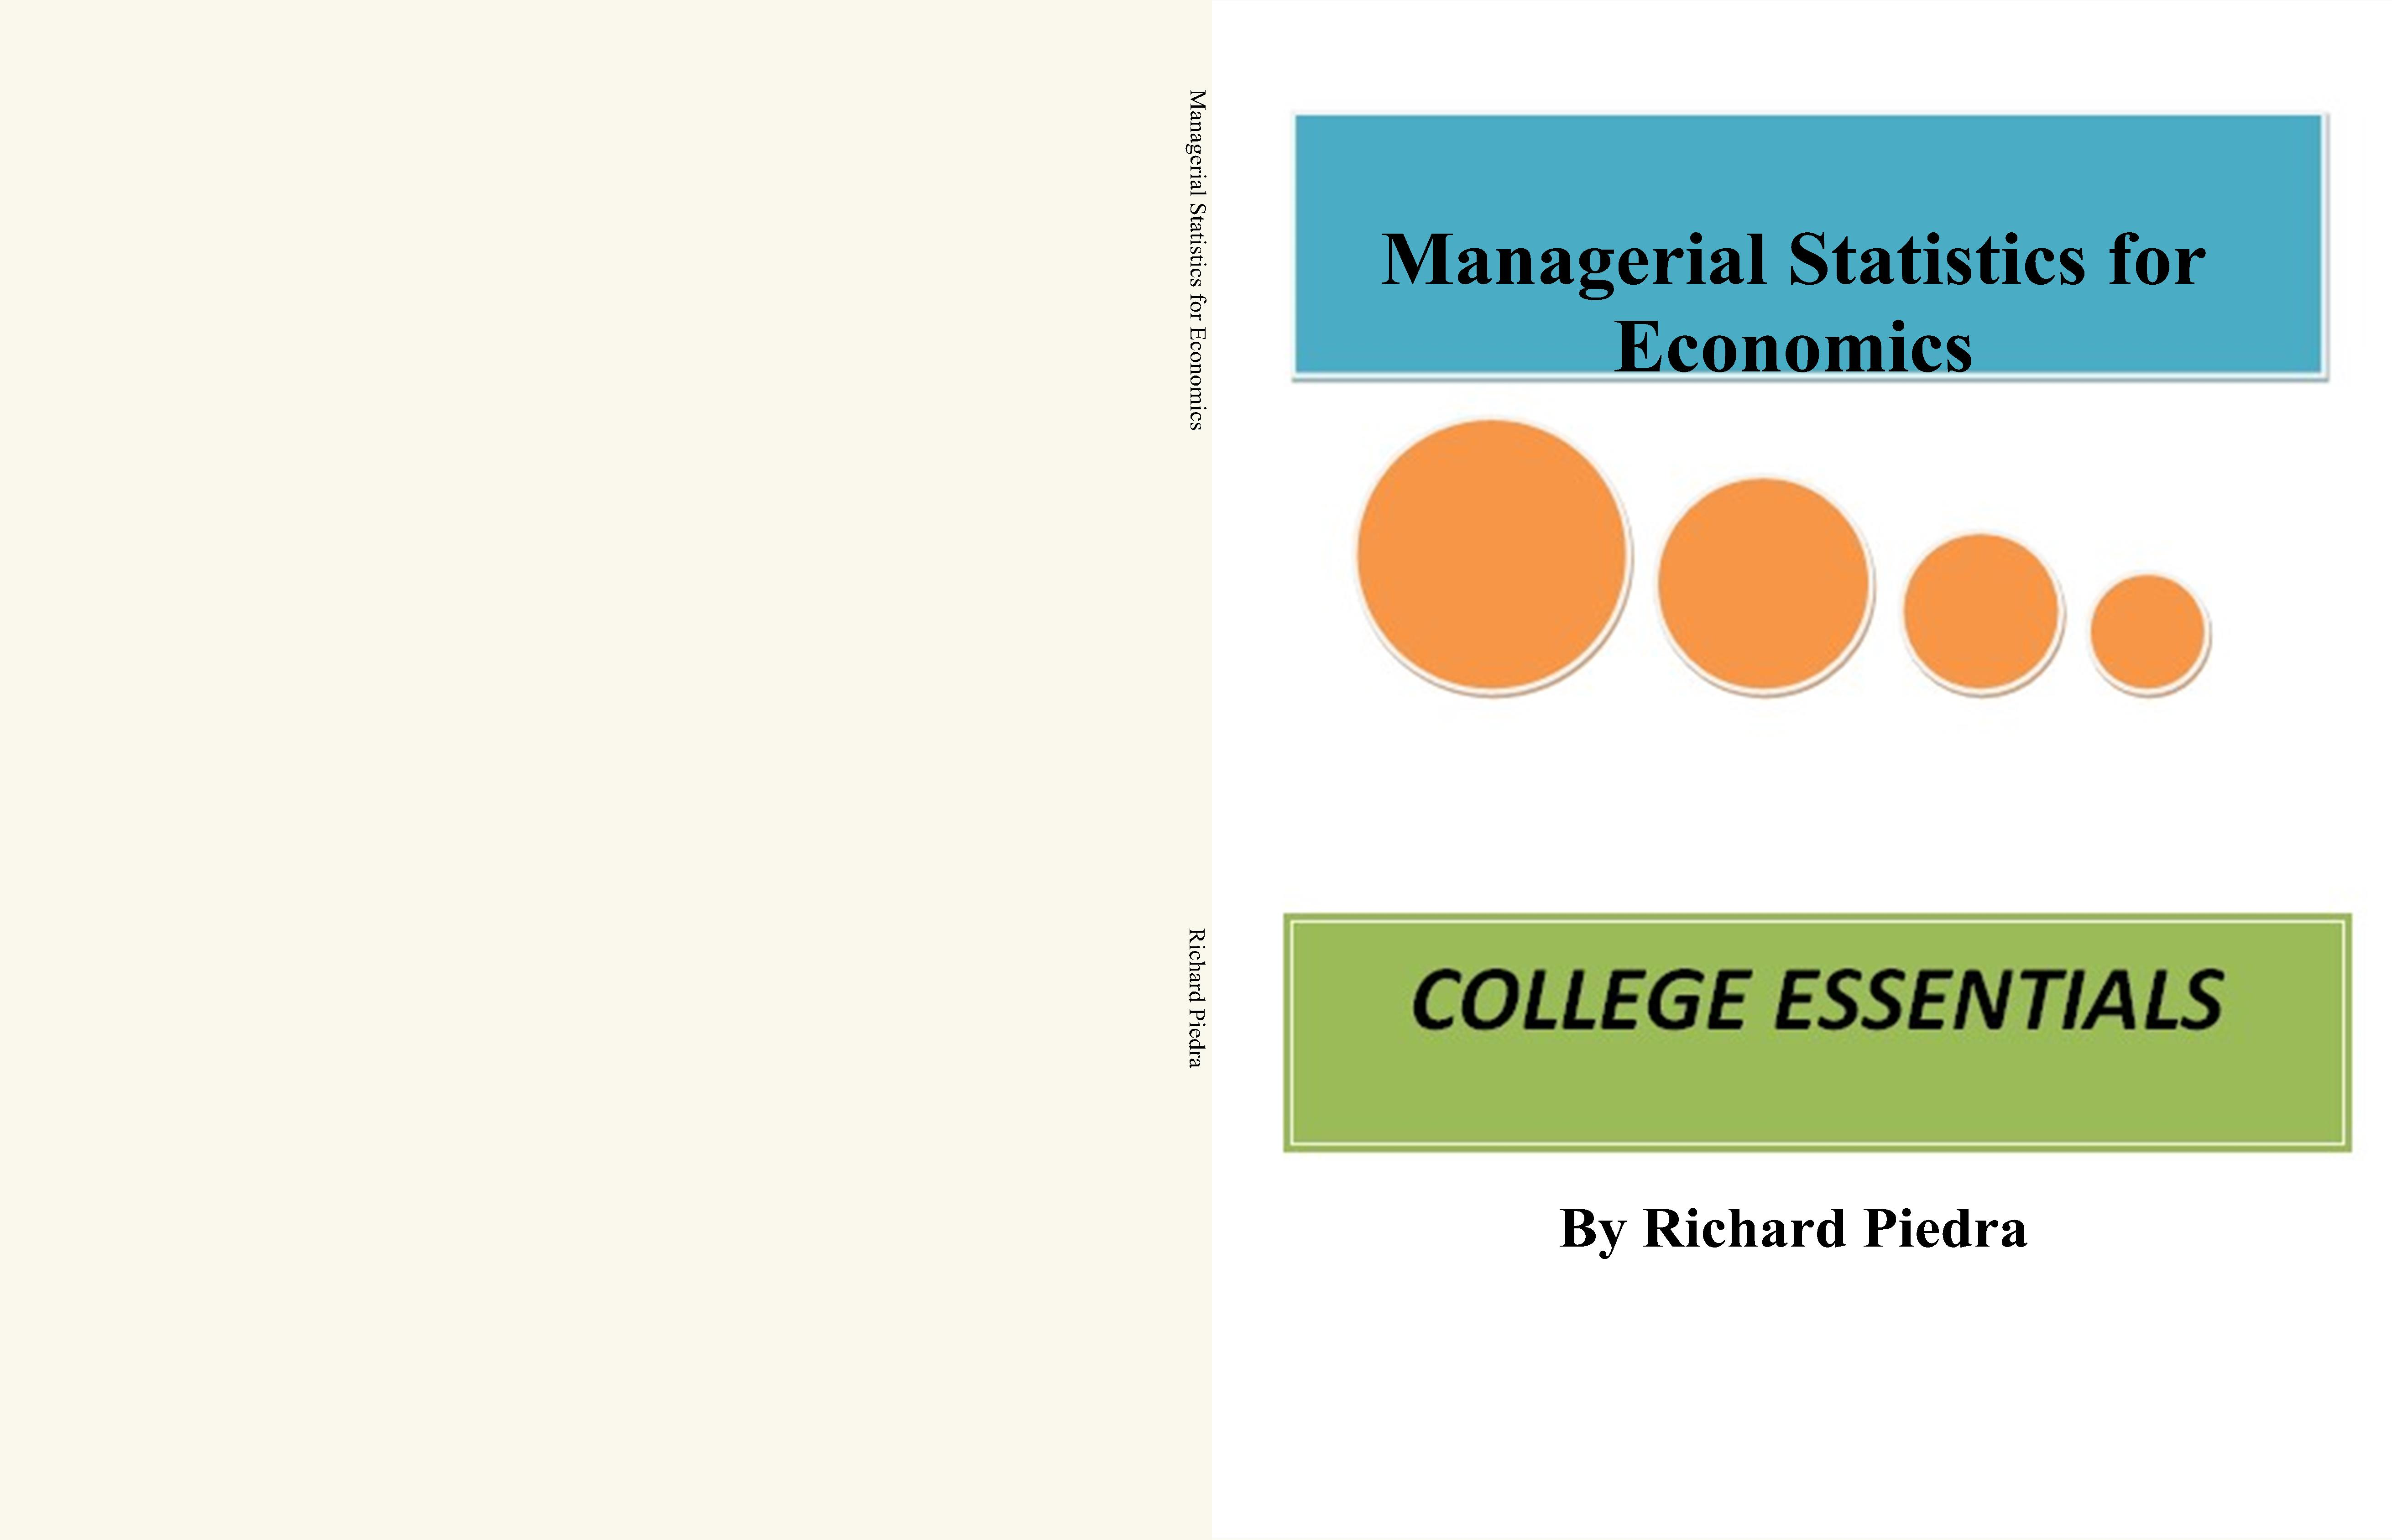 Managerial Statistics for Economics cover image